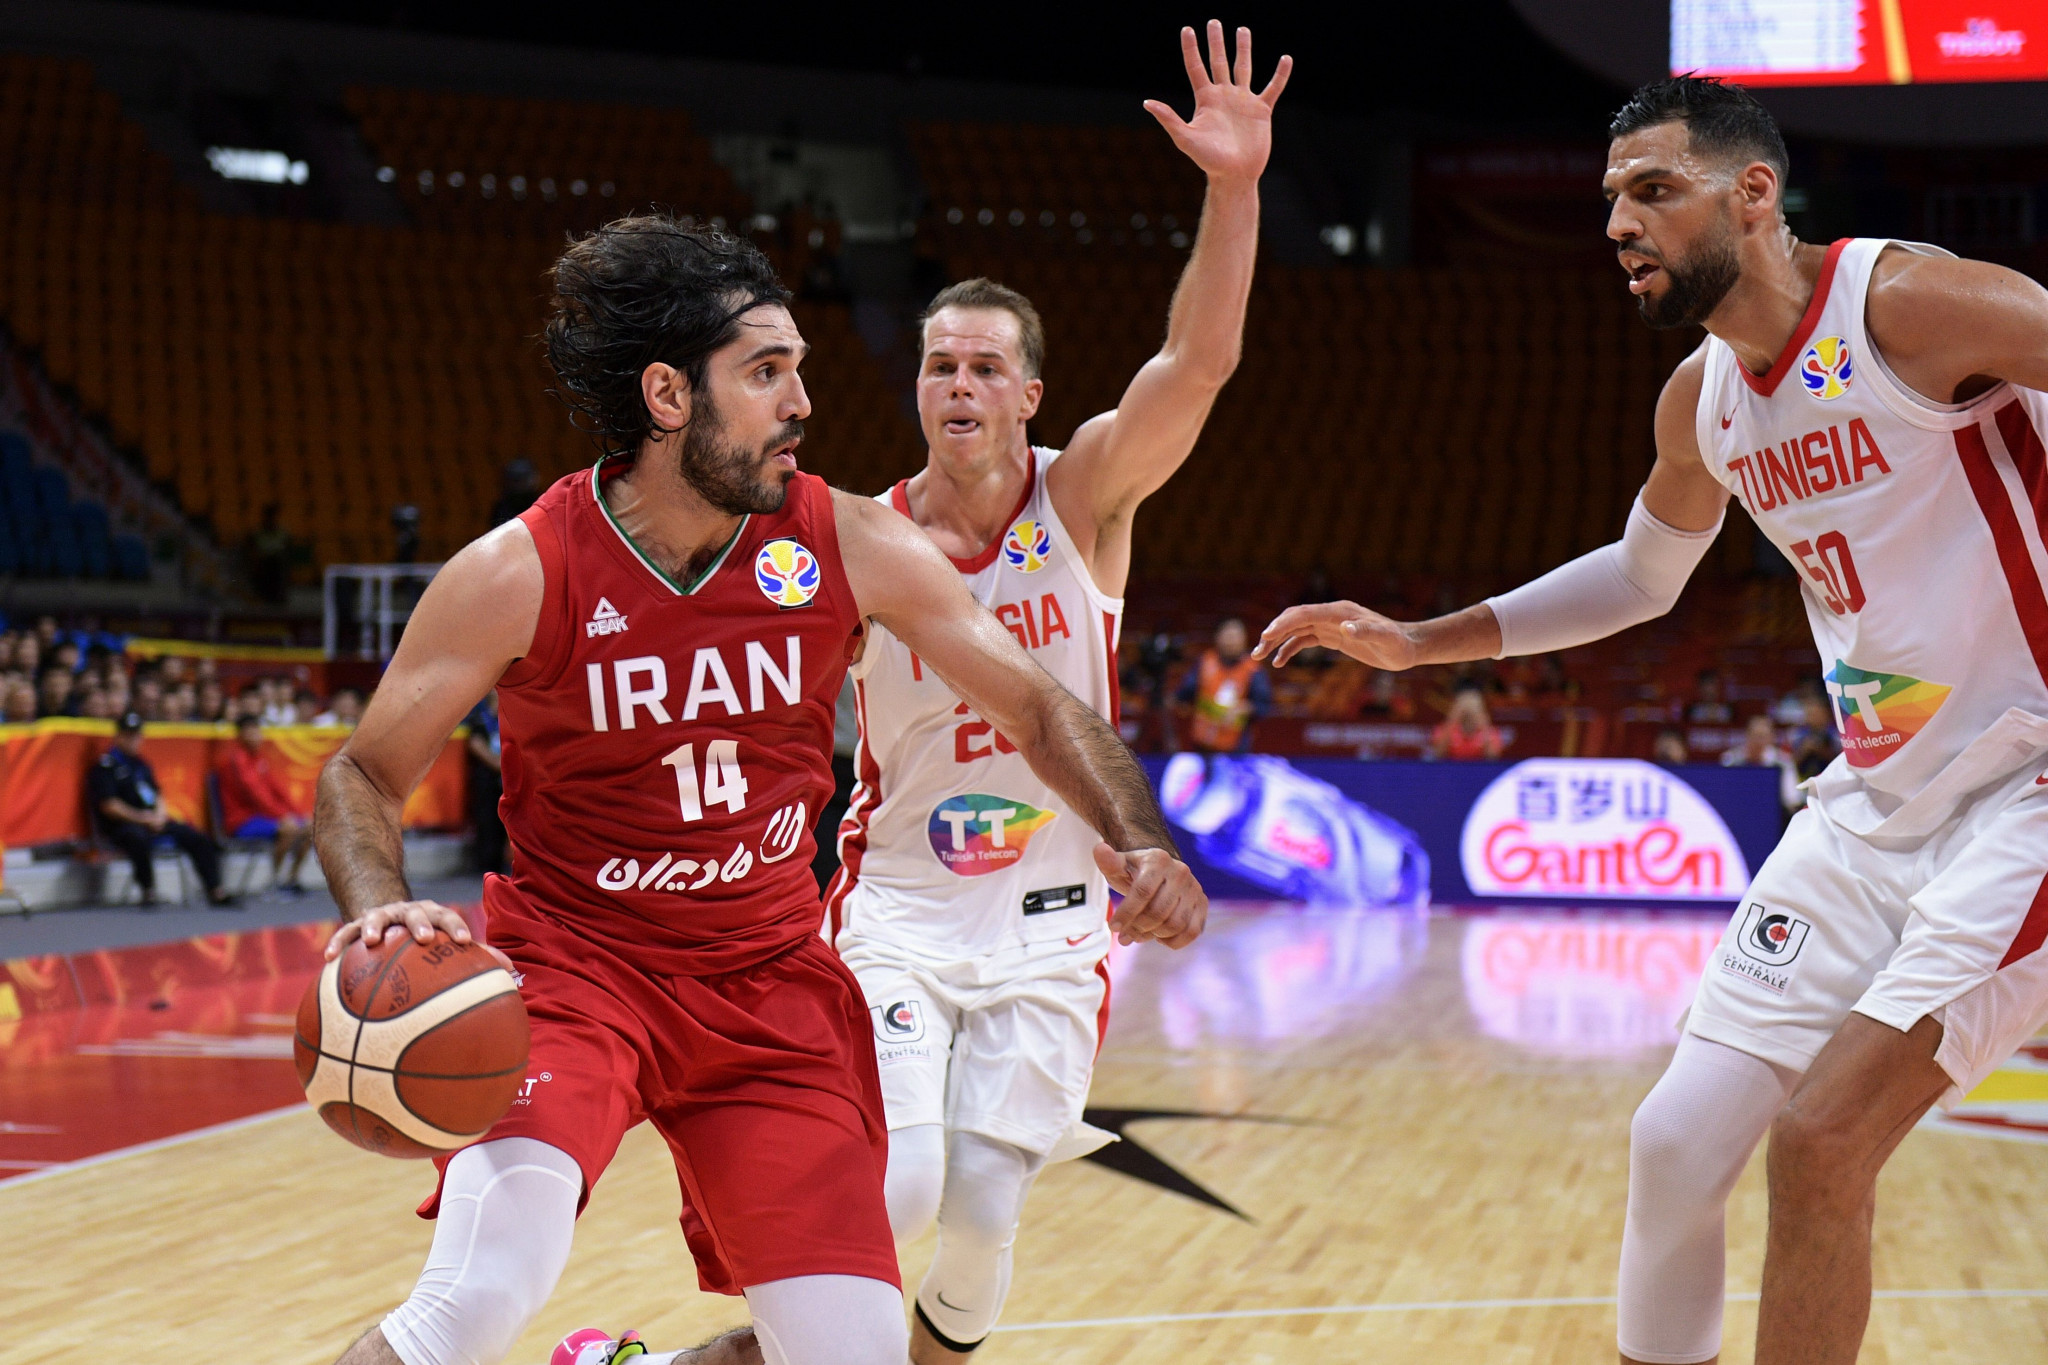 Shooter Rostamian and basketball's Bahrami named Iran flagbearers for Tokyo 2020